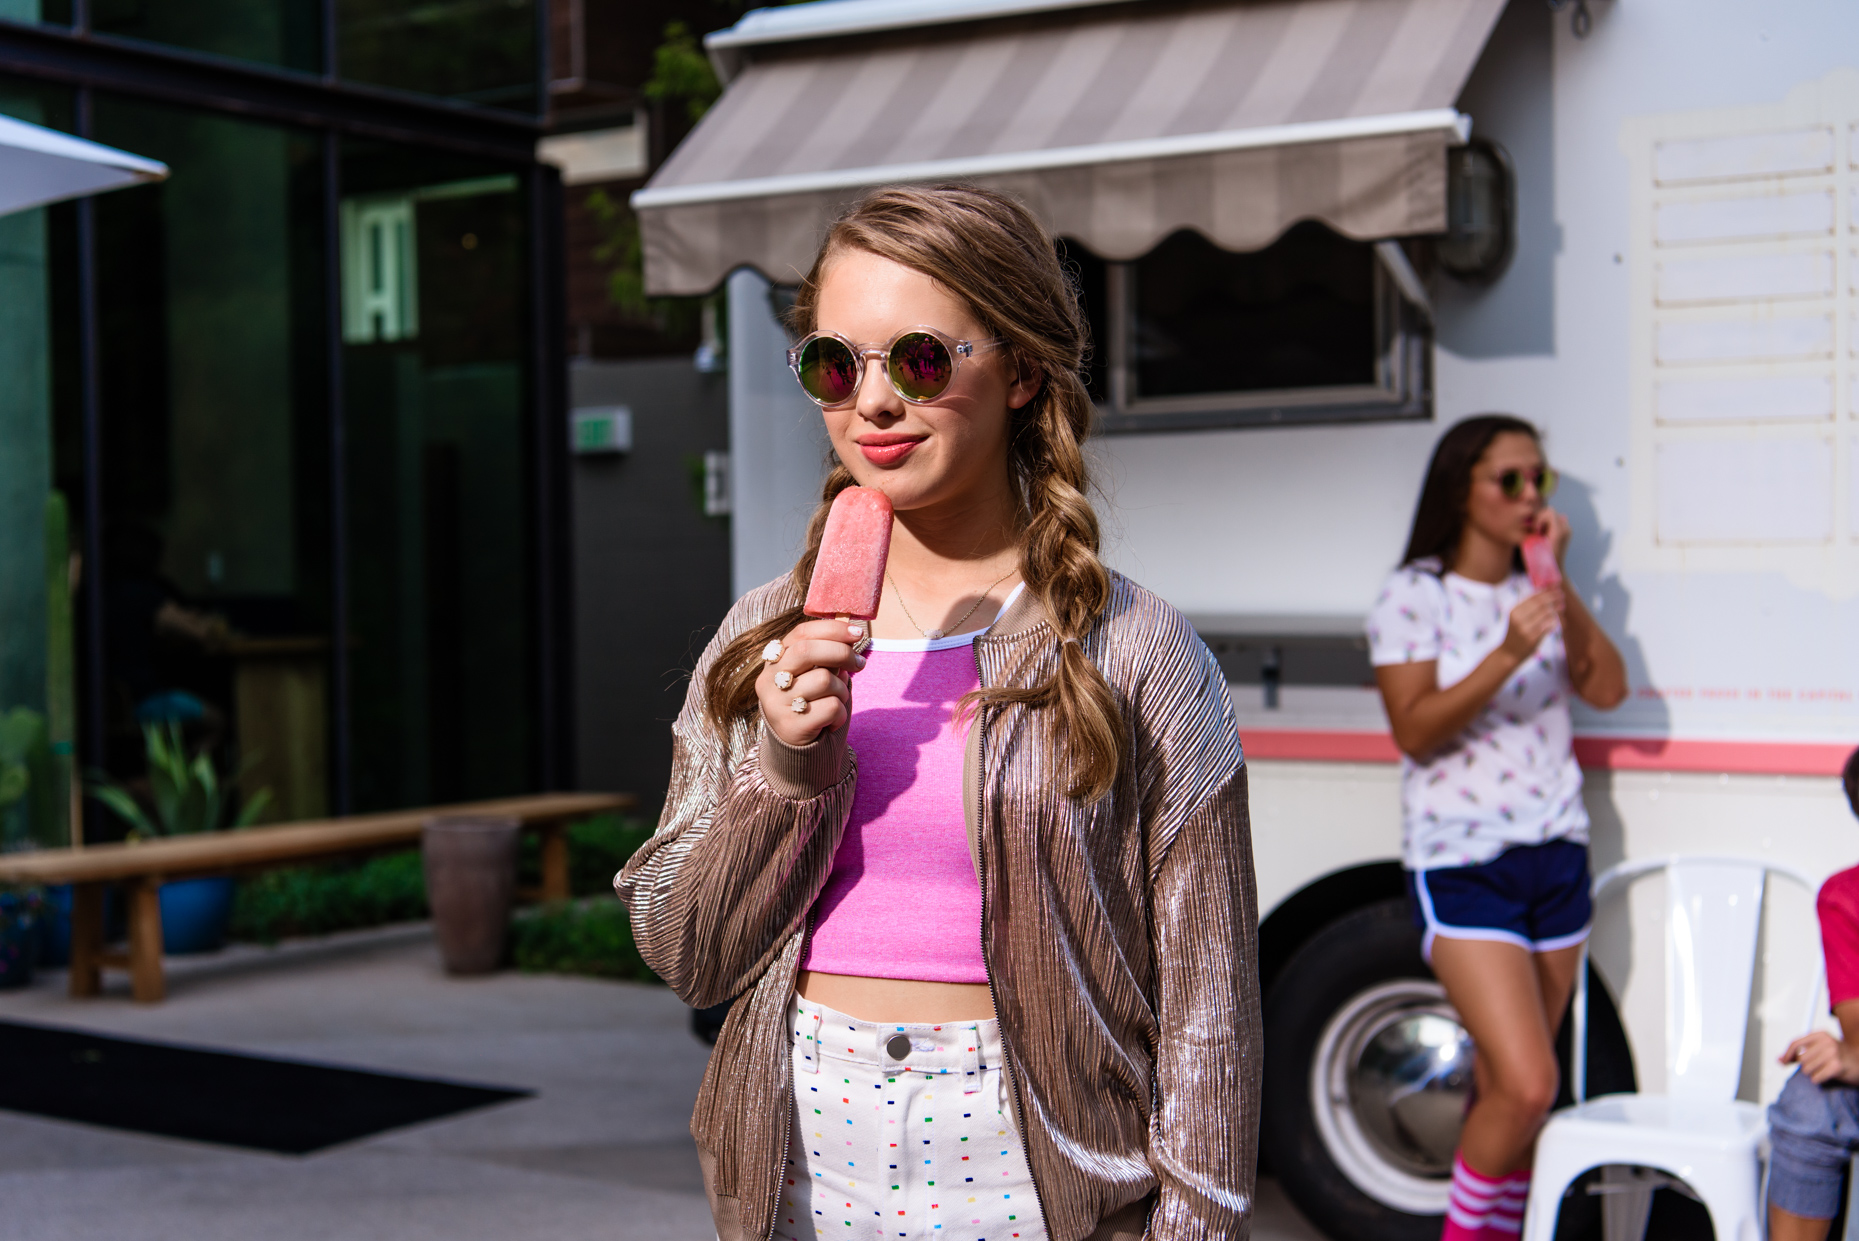 Commercial-Austin-Music-Photographers-Madison-Mcwilliams-Set-Video-Ice-Cream-Popsicle-Congress